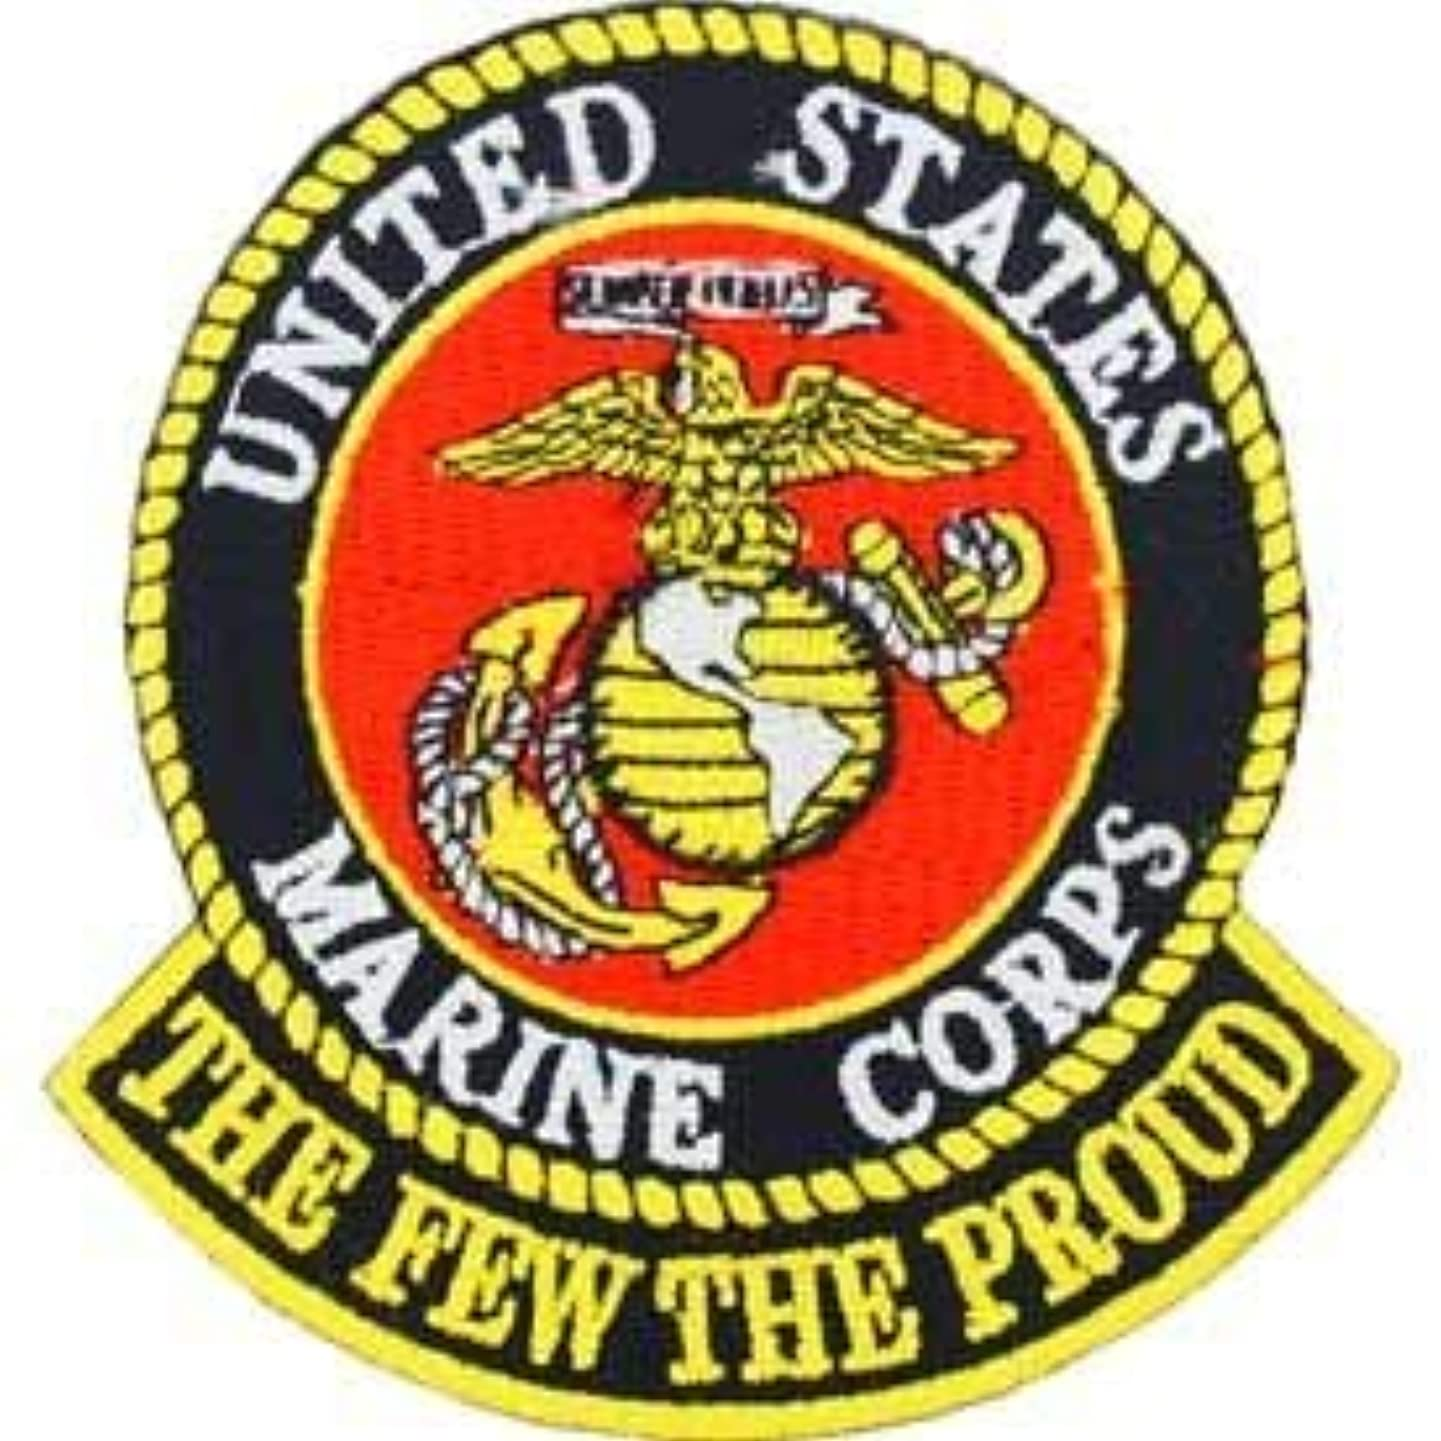 USMC, The Few The Proud - Embroidered Novelty Patches, Iron On Patch - 3